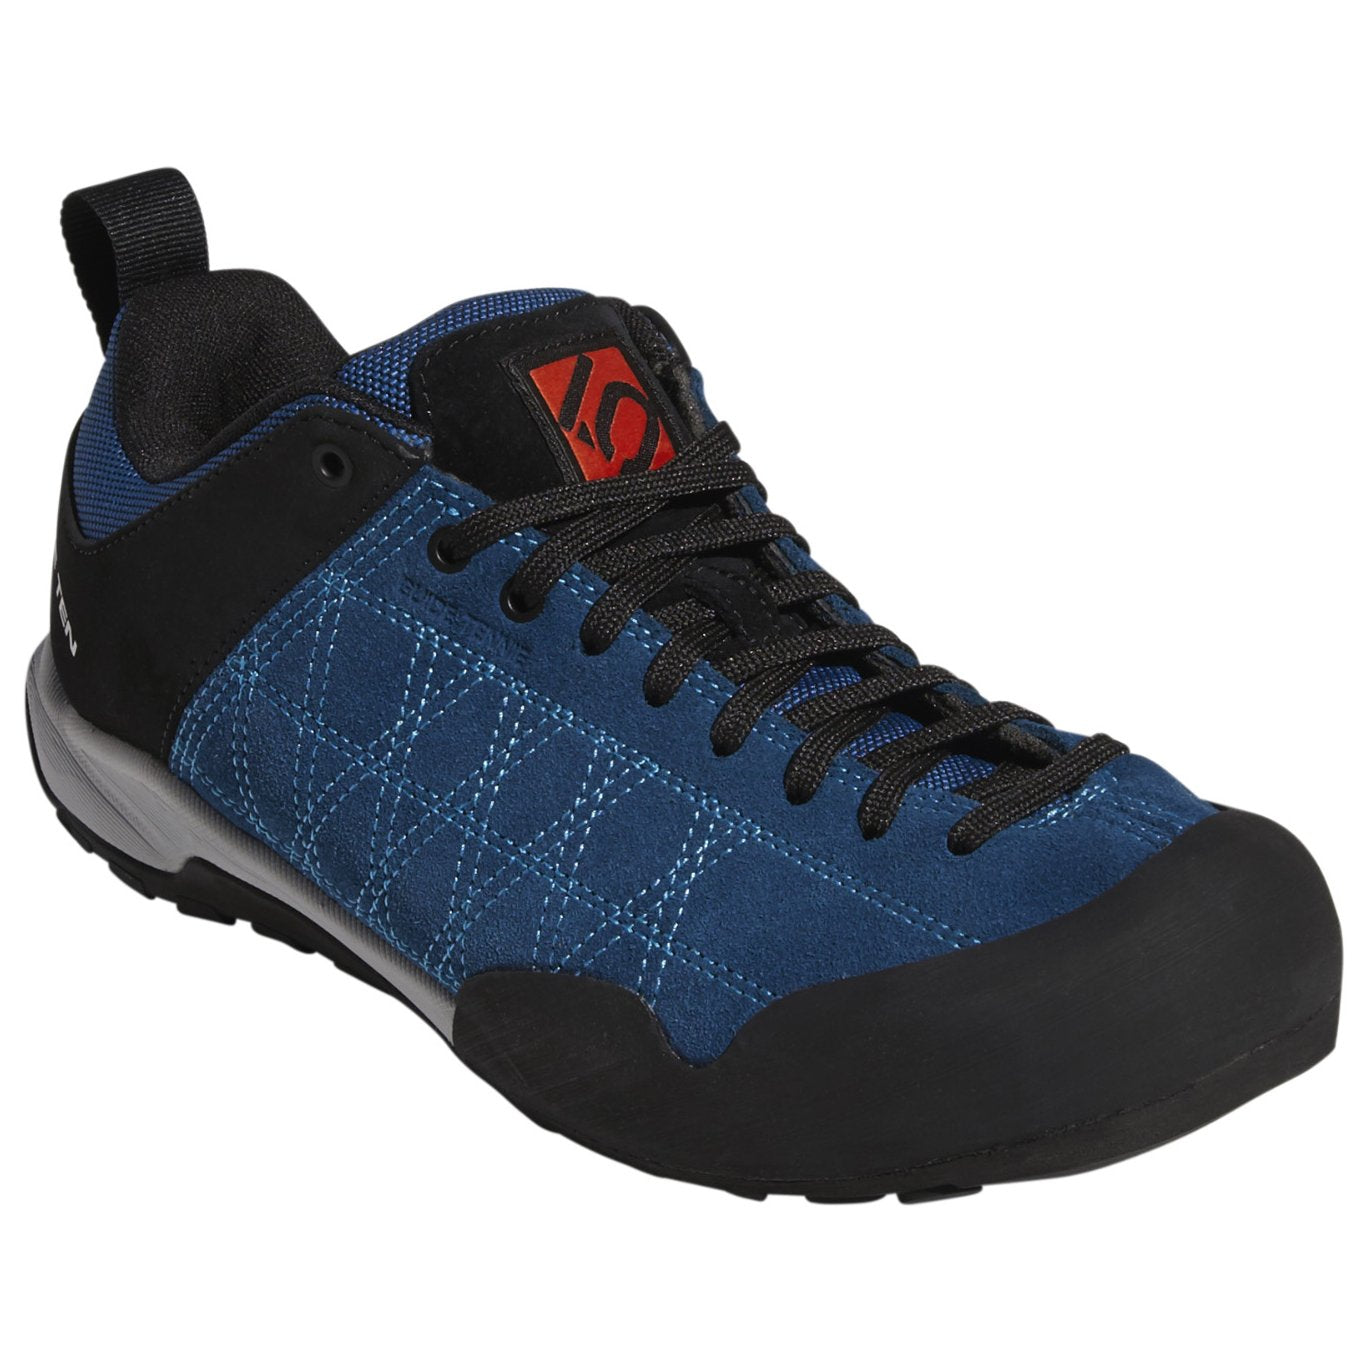 Five Ten Guide Tennie Womens approach shoe, front/side view in blue/black colours